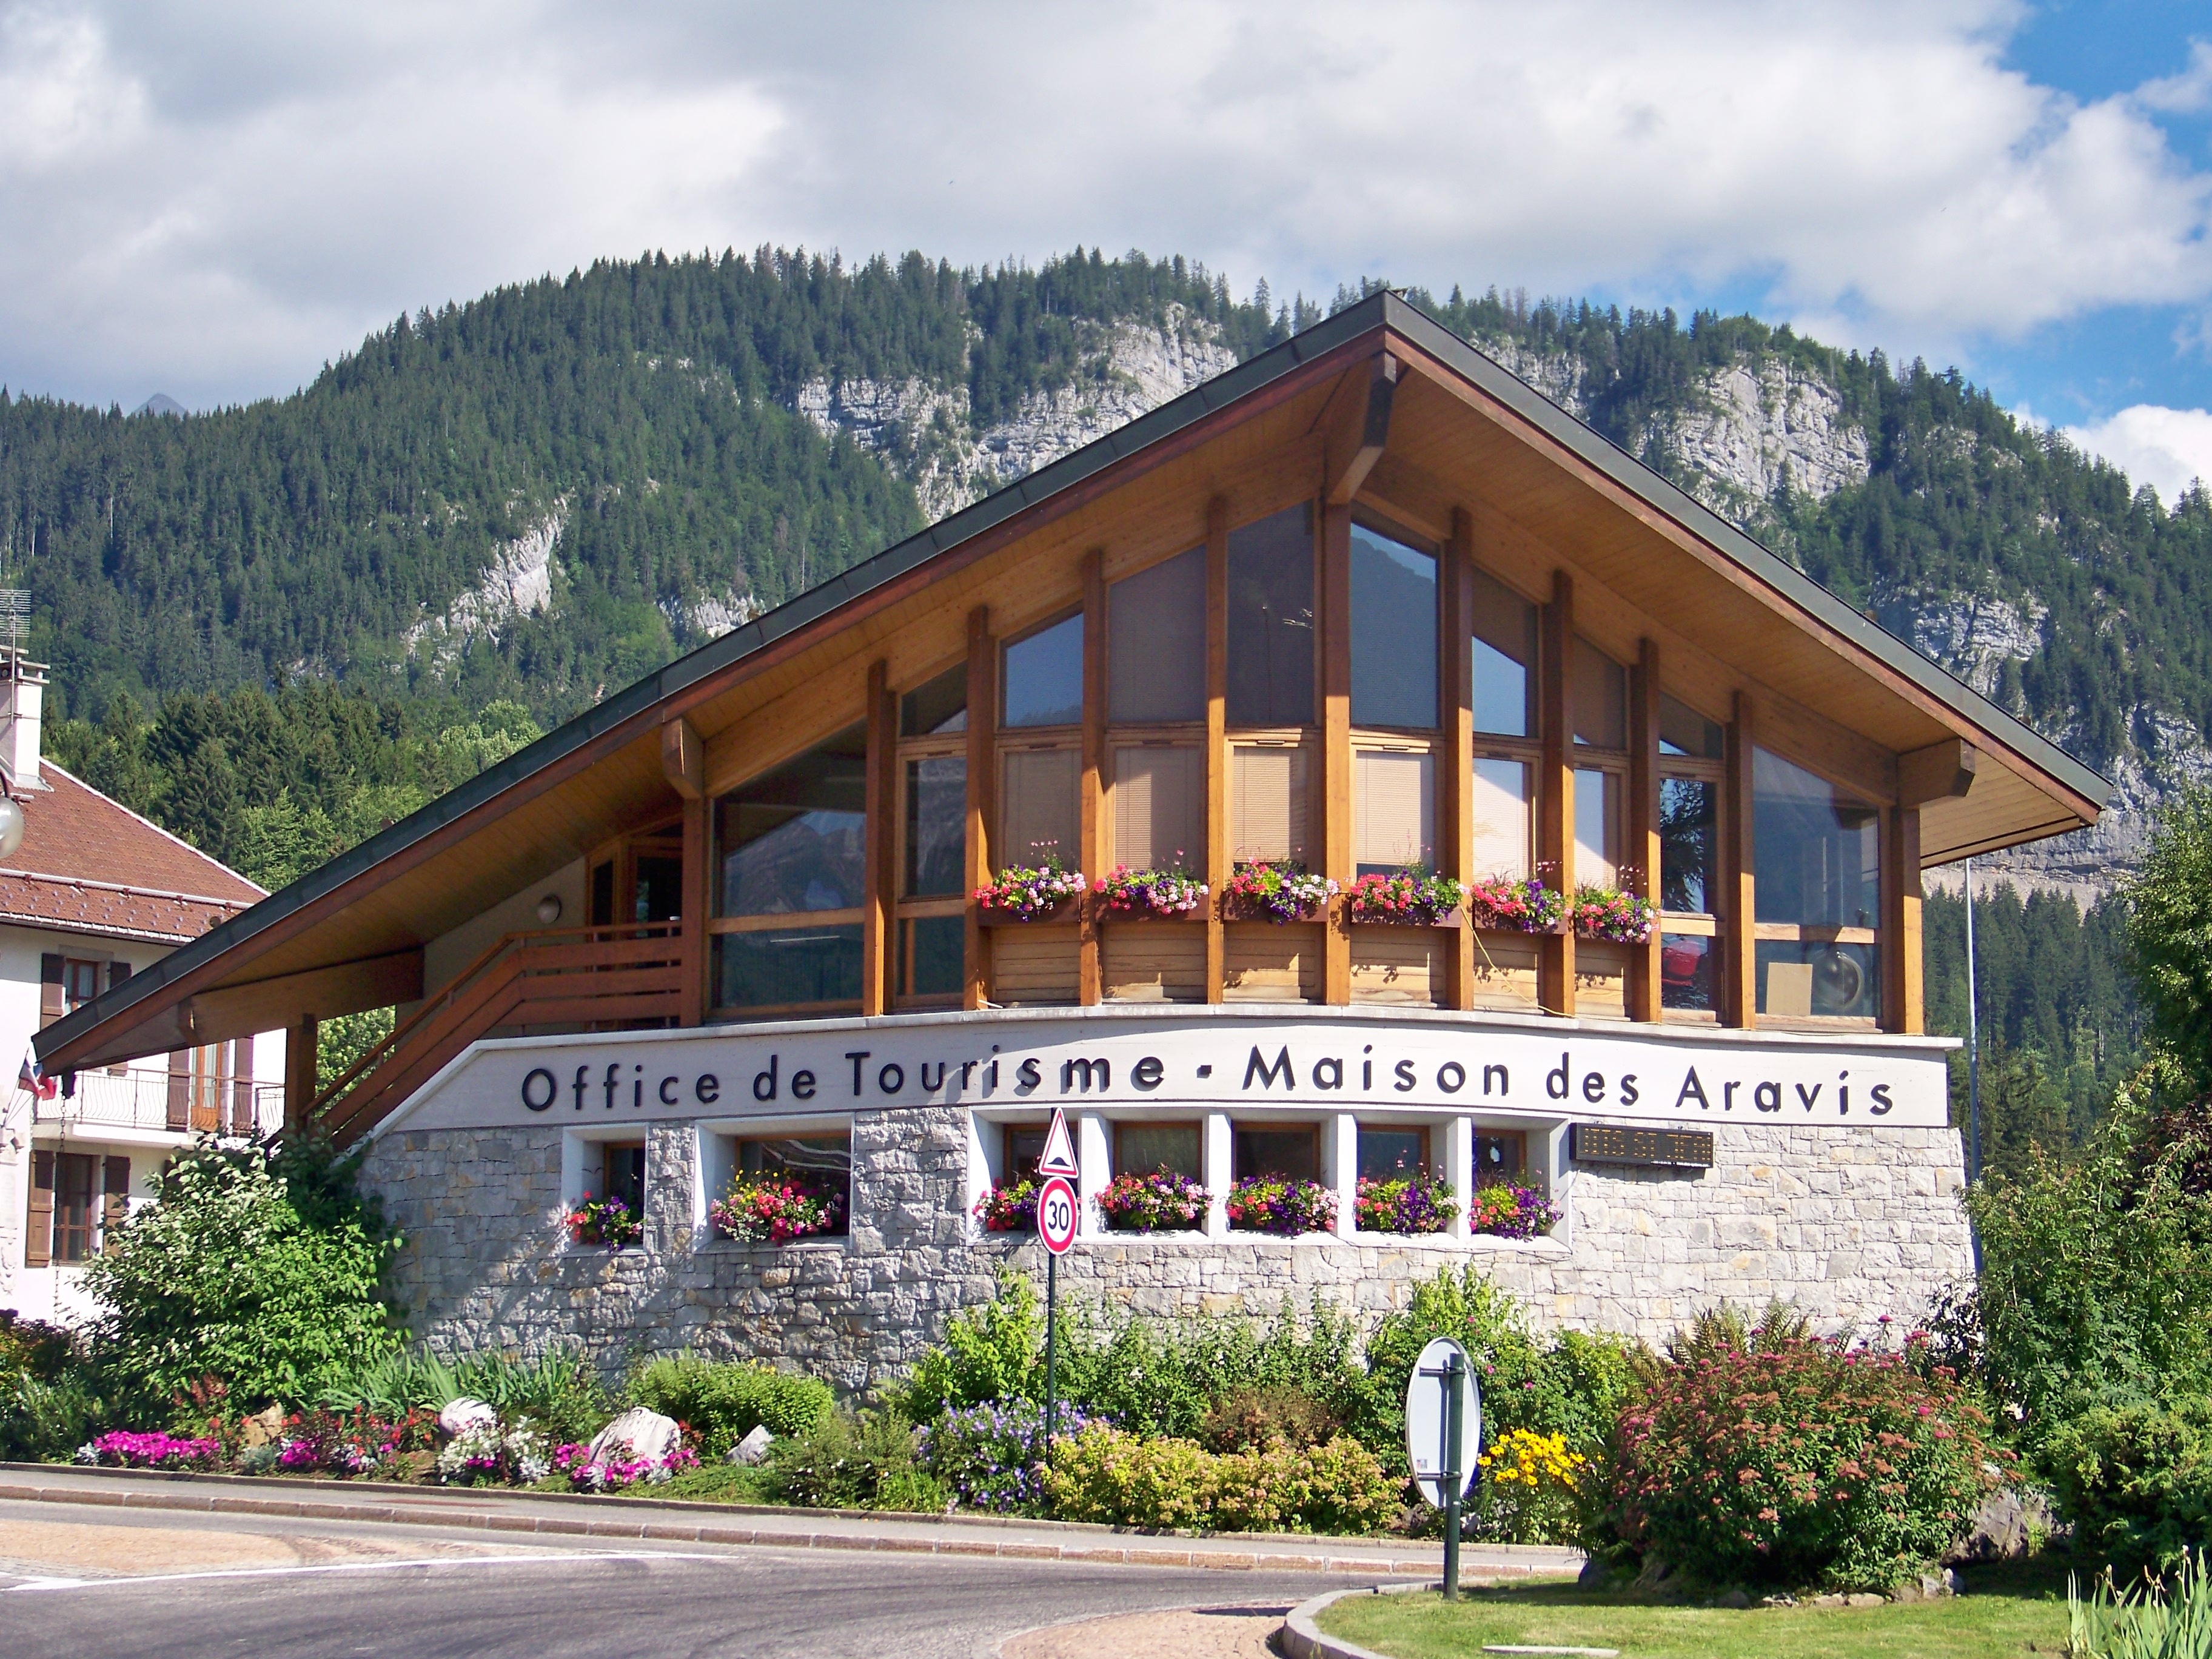 Office de tourisme de saint jean de sixt savoie mont - Office de tourisme saint jean d arves ...